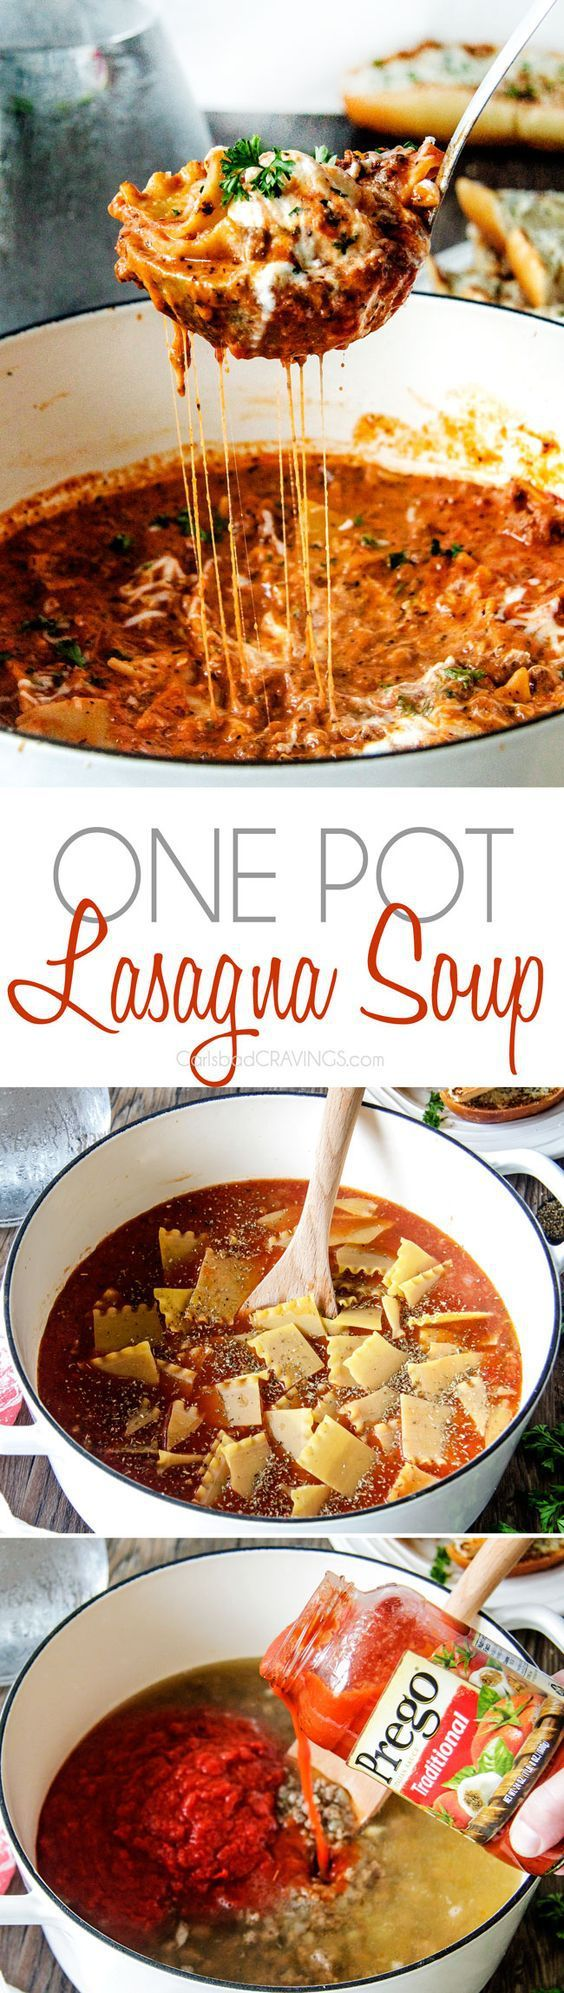 One Pot Lasagna Soup Recipe | Carlsbad Cravings - The Best Easy One Pot Pasta Family Dinner Recipes #onepotpasta #onepotmeals #pastarecipes #onepotpastarecipes #onepotrecipes #mealprep #pasta #simplefamilymeals #simplefamilyrecipes #simplerecipes